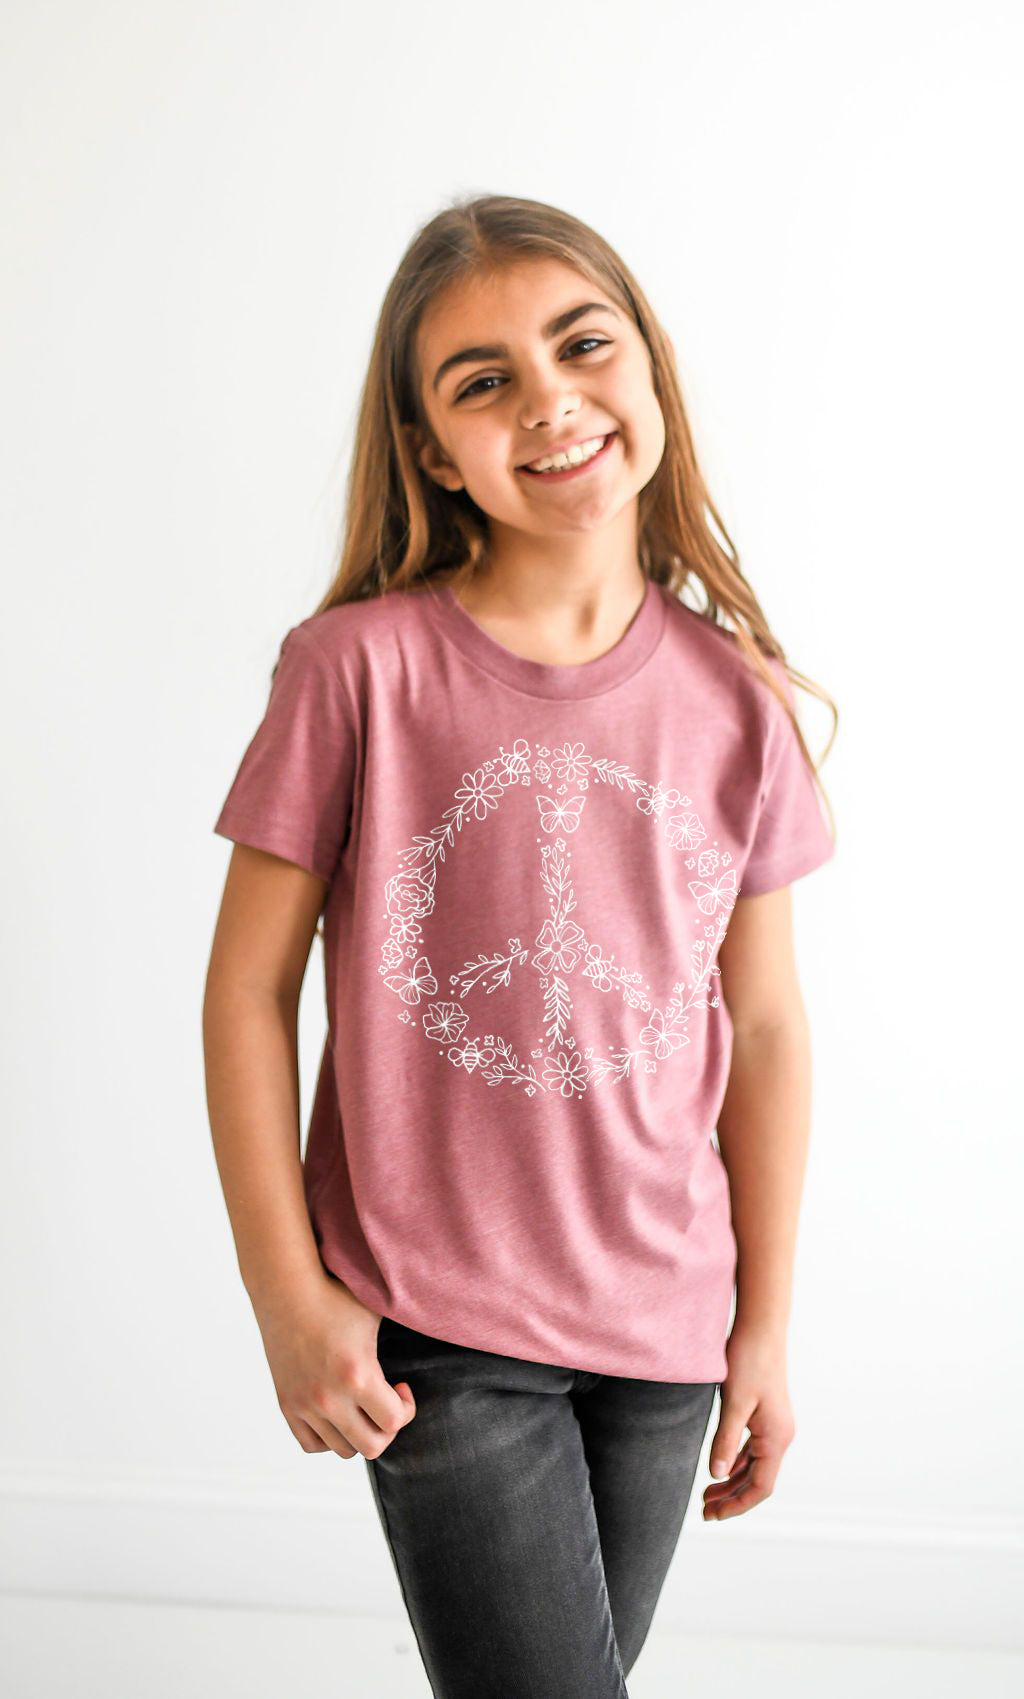 Pollinator Peace Sign Tee - Kids